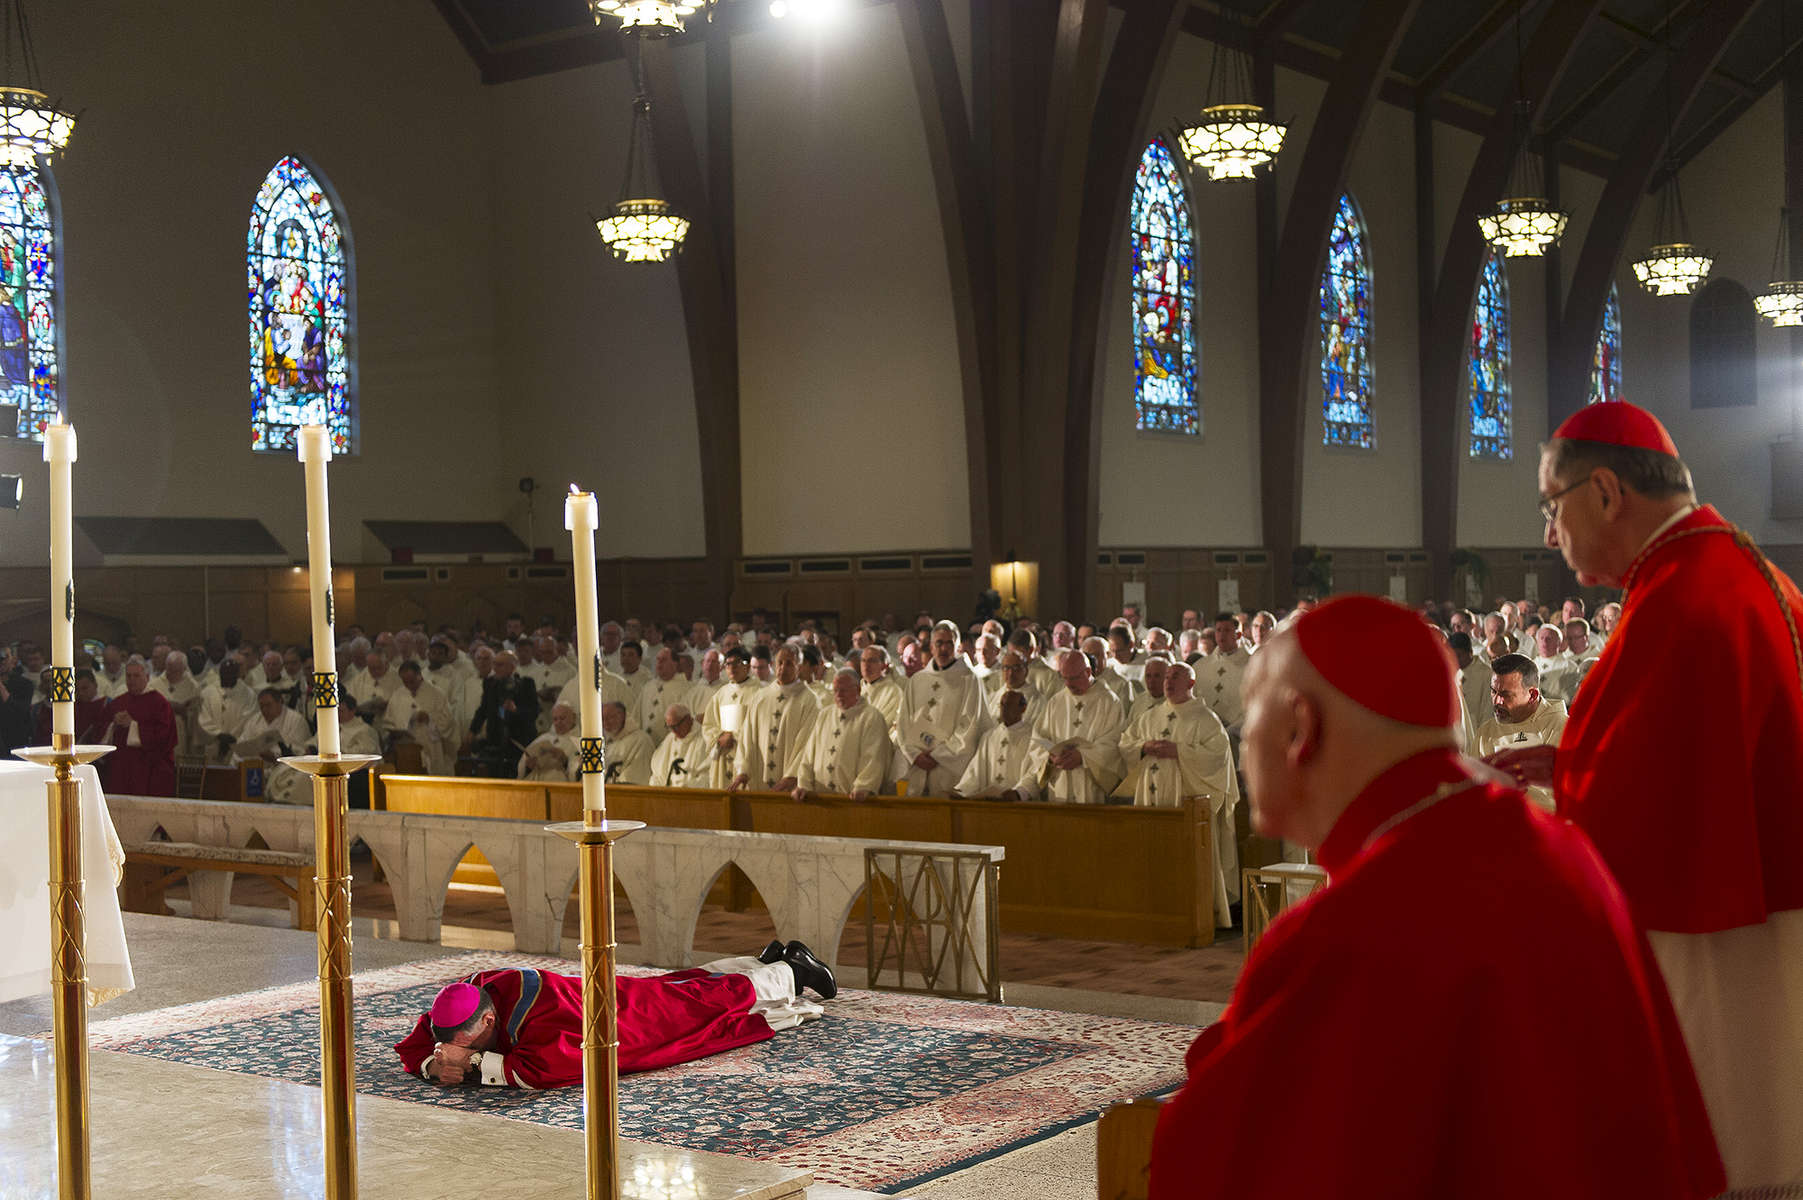 The Most Reverend James F. Checchio is installed as the 5th Bishop of the Diocese of Metuchen at The Church of the Sacred Heart in South Plainfield, NJ.    Photographed for Saint Peter's University Hospital